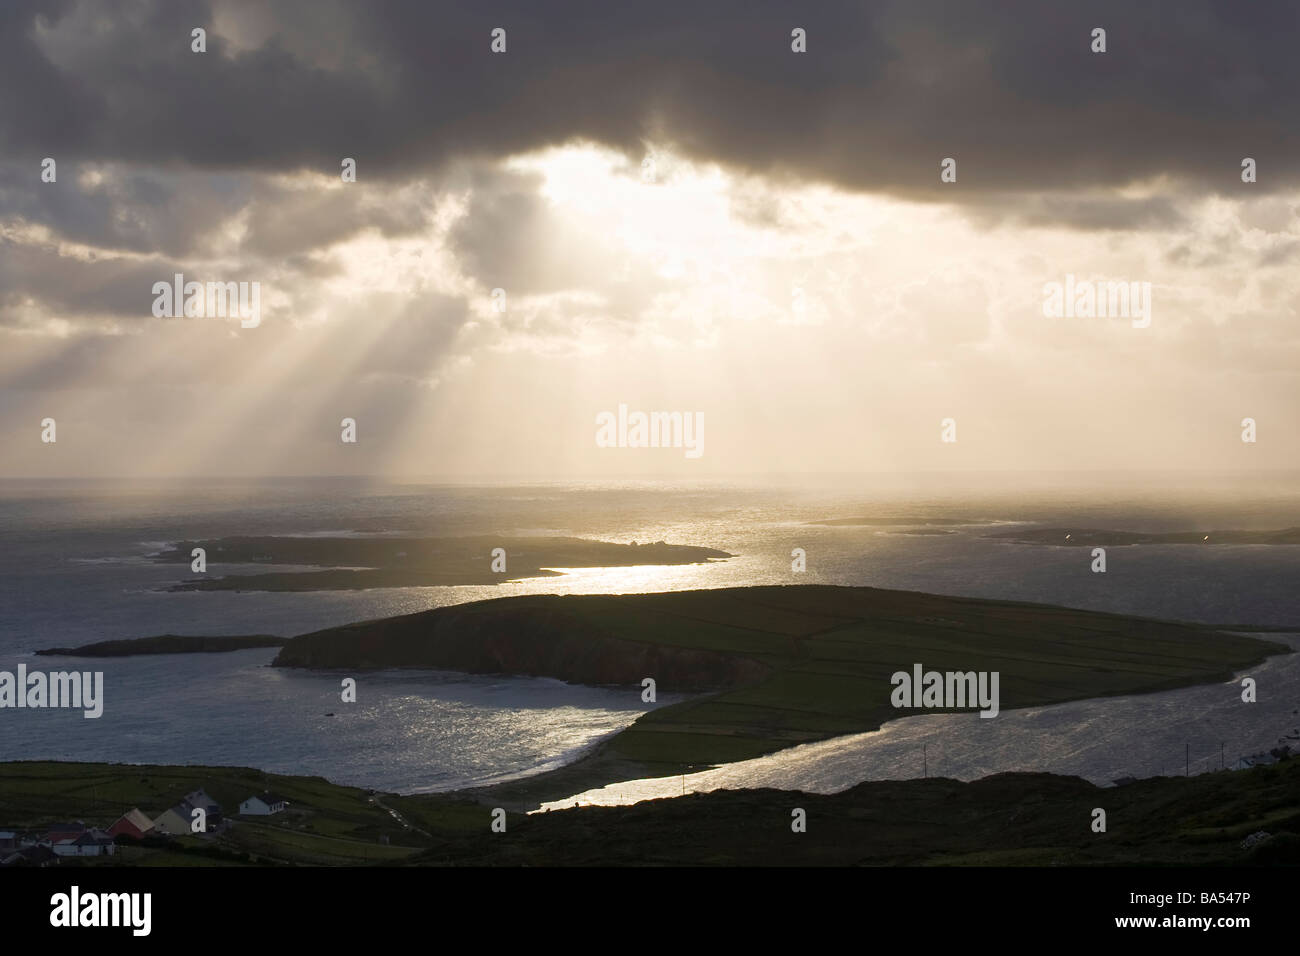 View from Sky Road near Clifden over looking the county Galway coast with a dramatic sunset - Stock Image